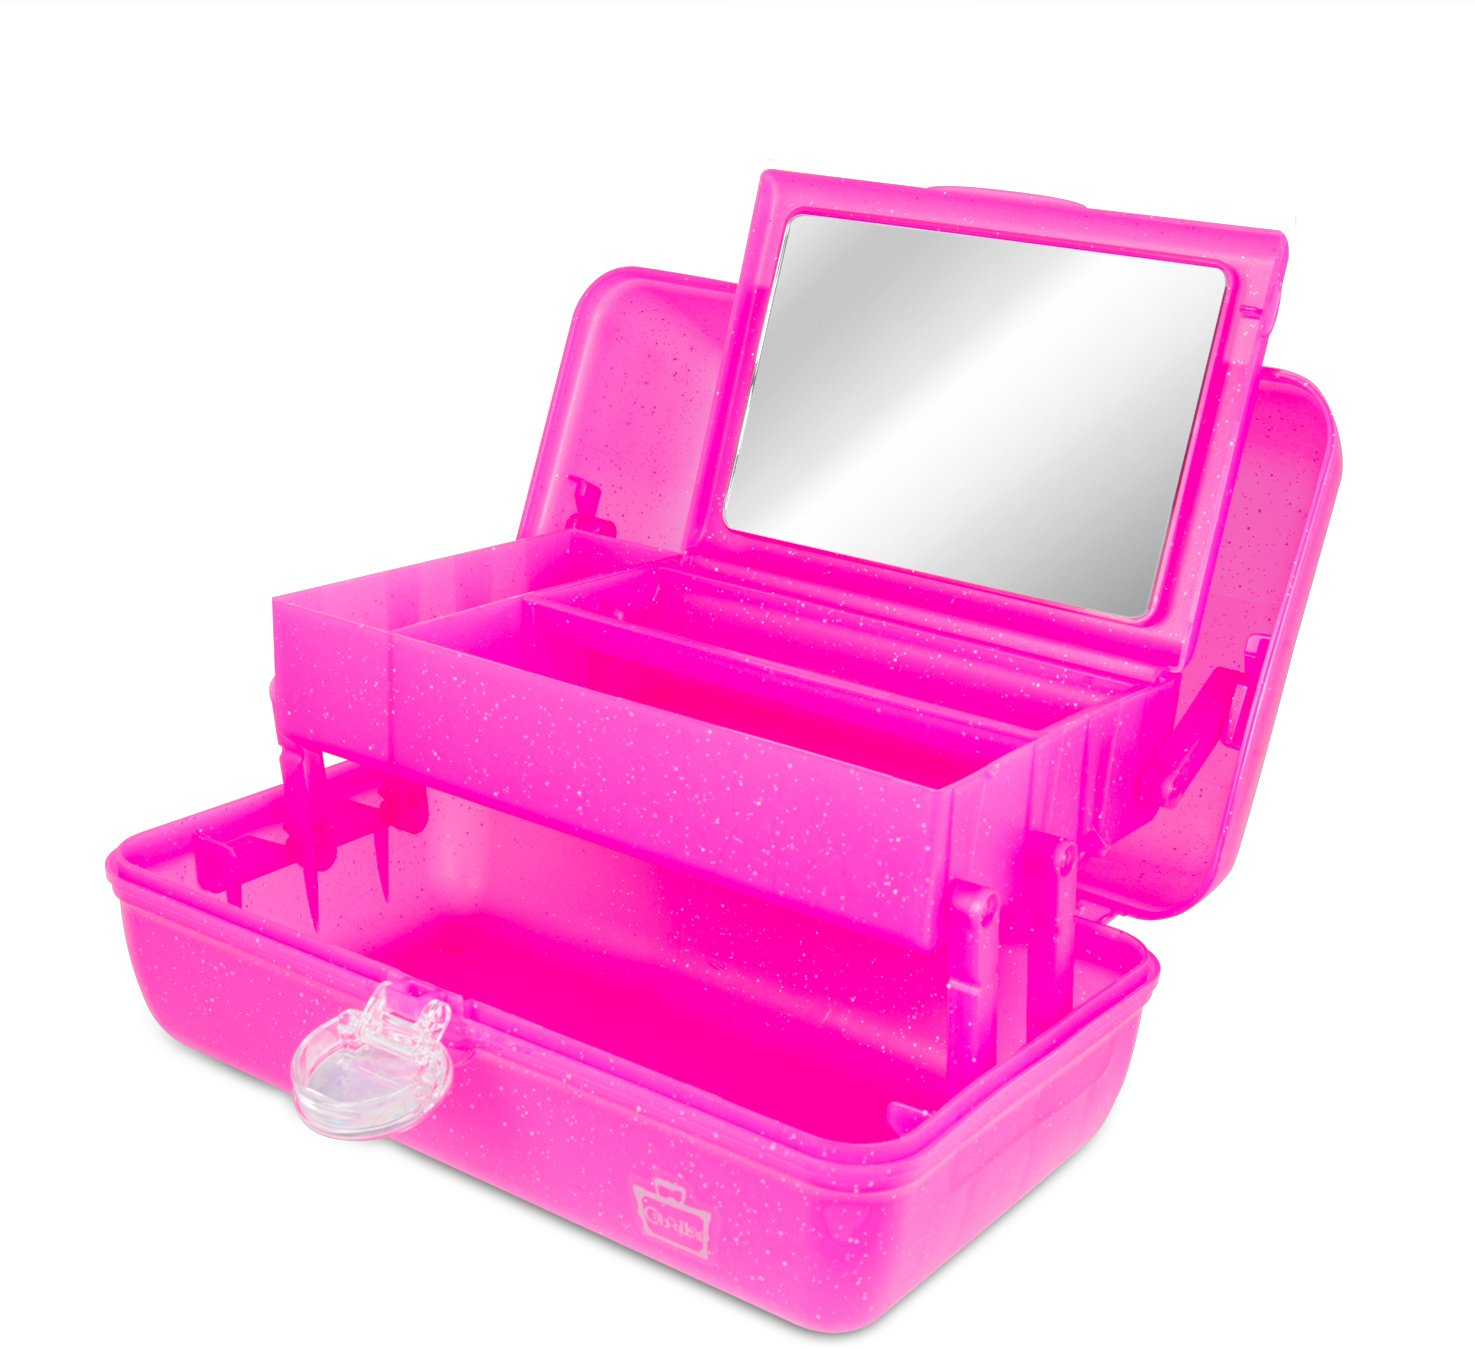 Caboodles On The Go Girl Classic Case, Pink Sparkle, 2.4 Pound by Caboodles (Image #2)